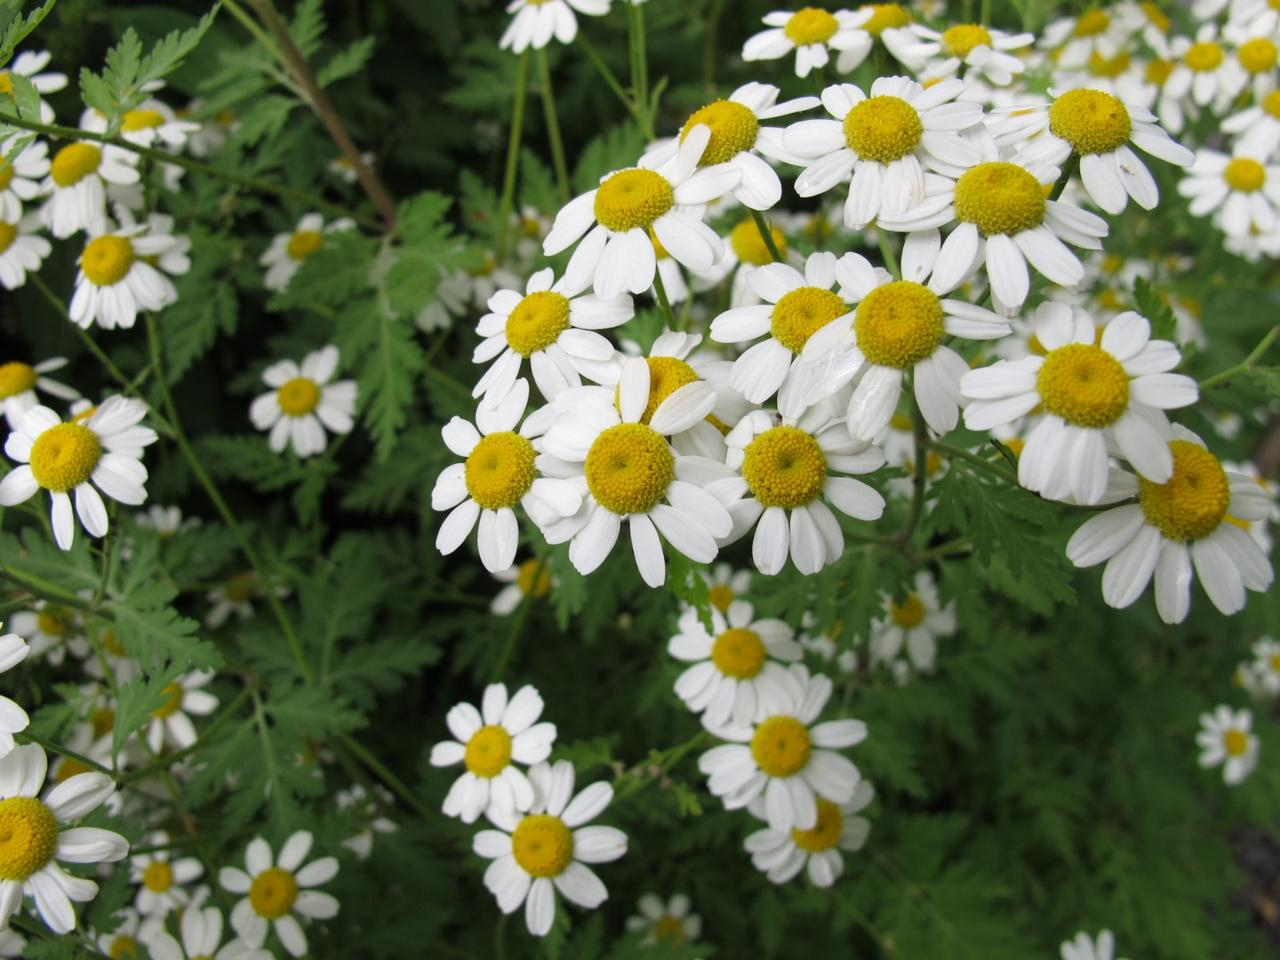 The common flower Feverfew has been found to host an anti-cancer compound